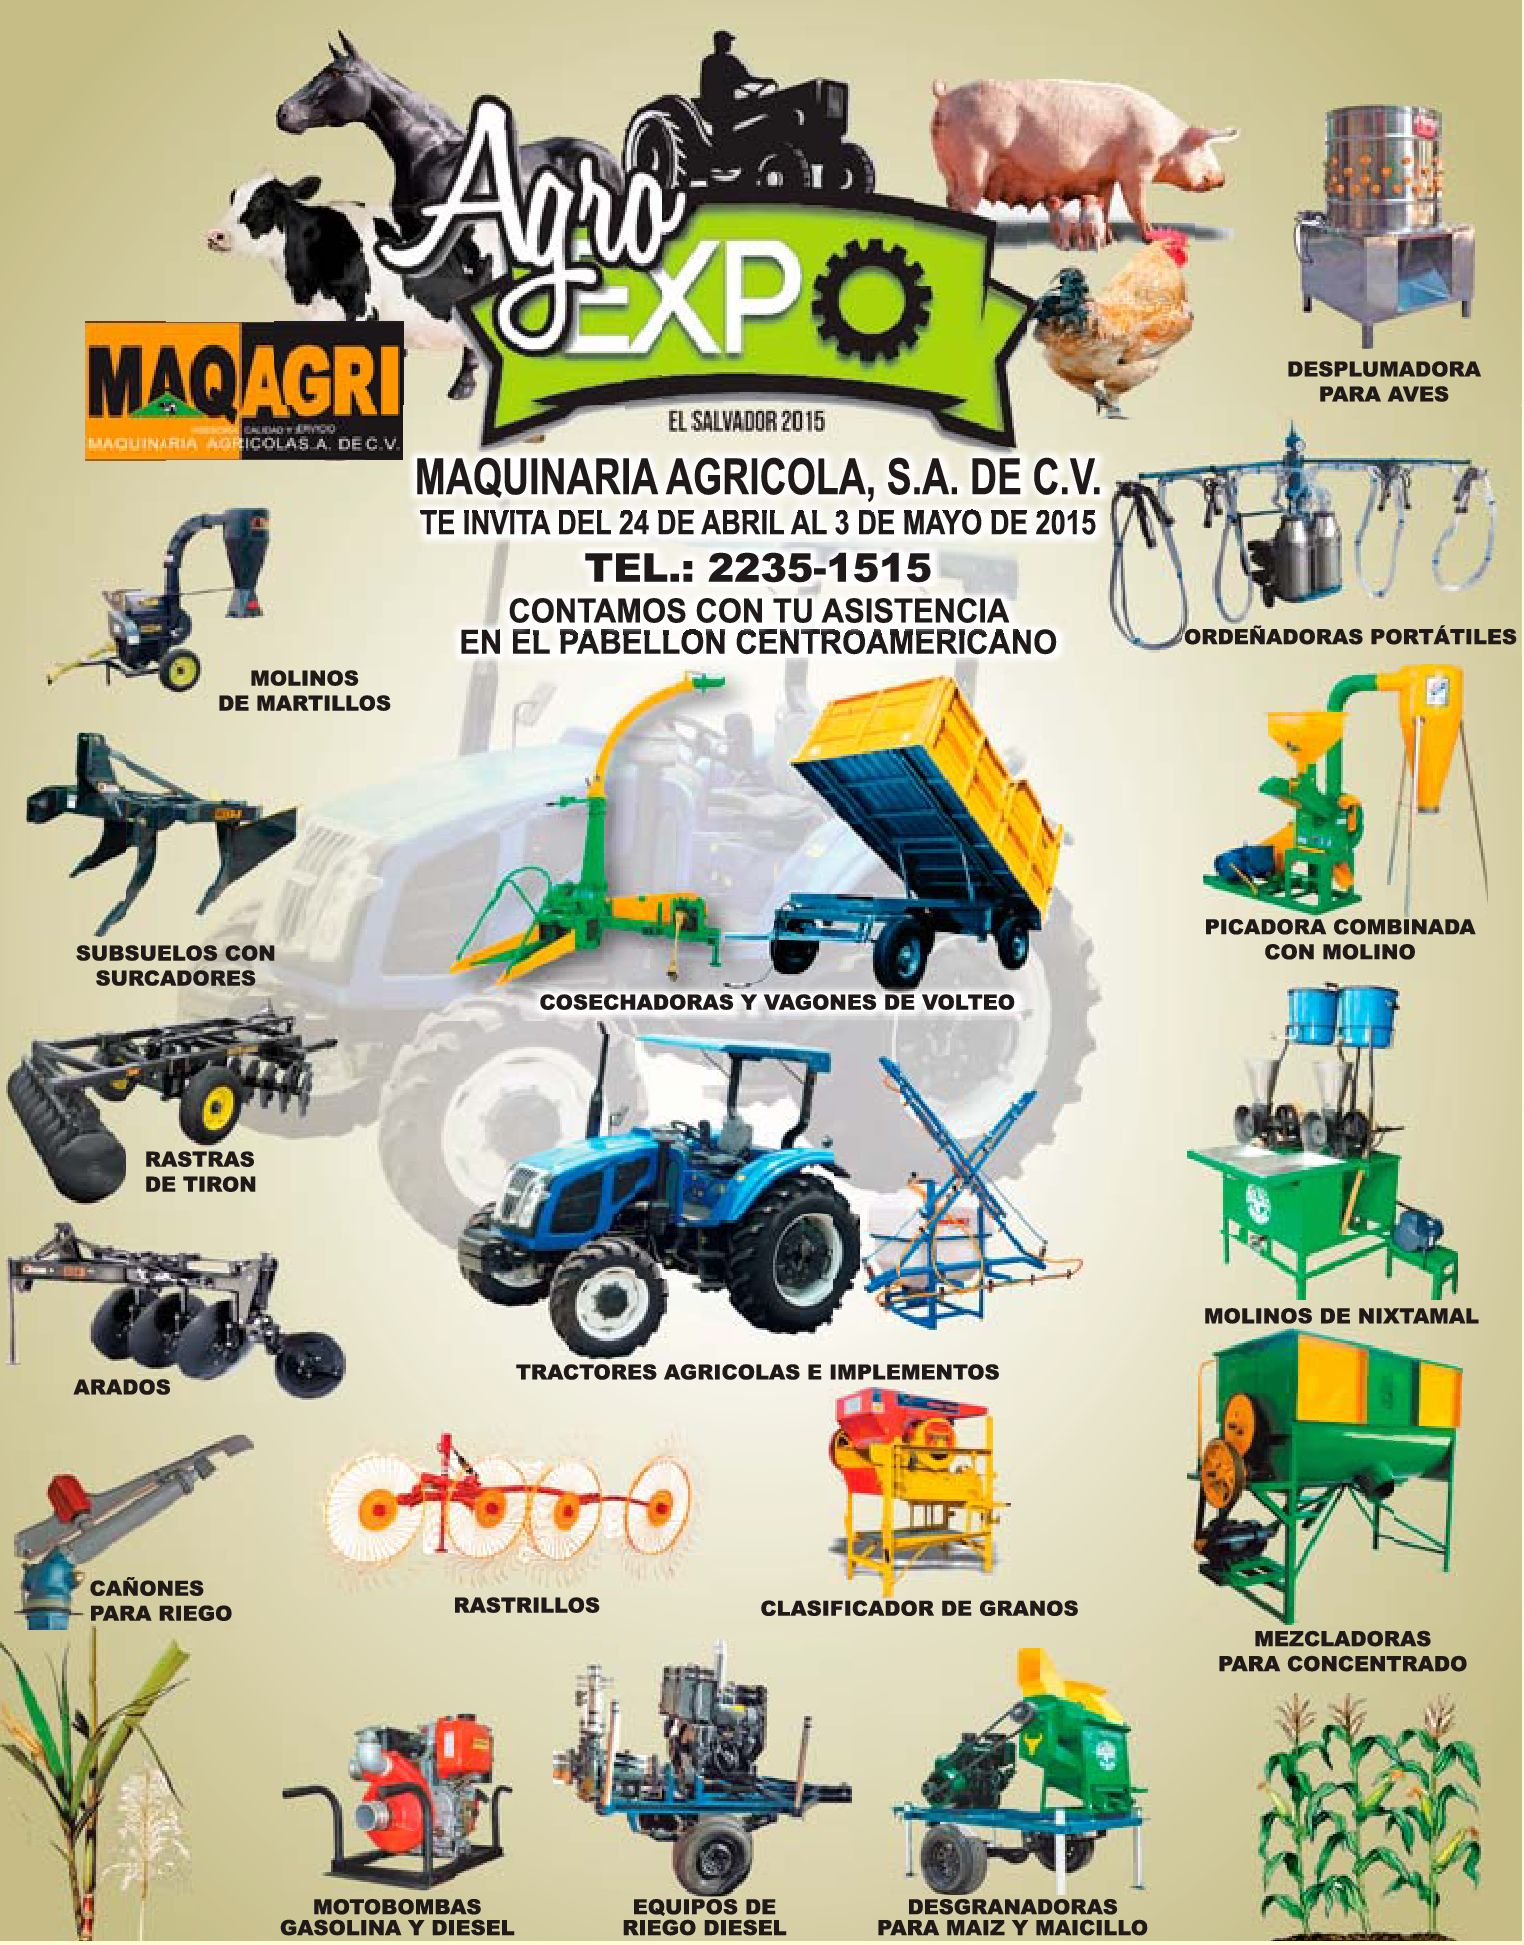 Agro EXPO 2015 maquinaria industrial agricola